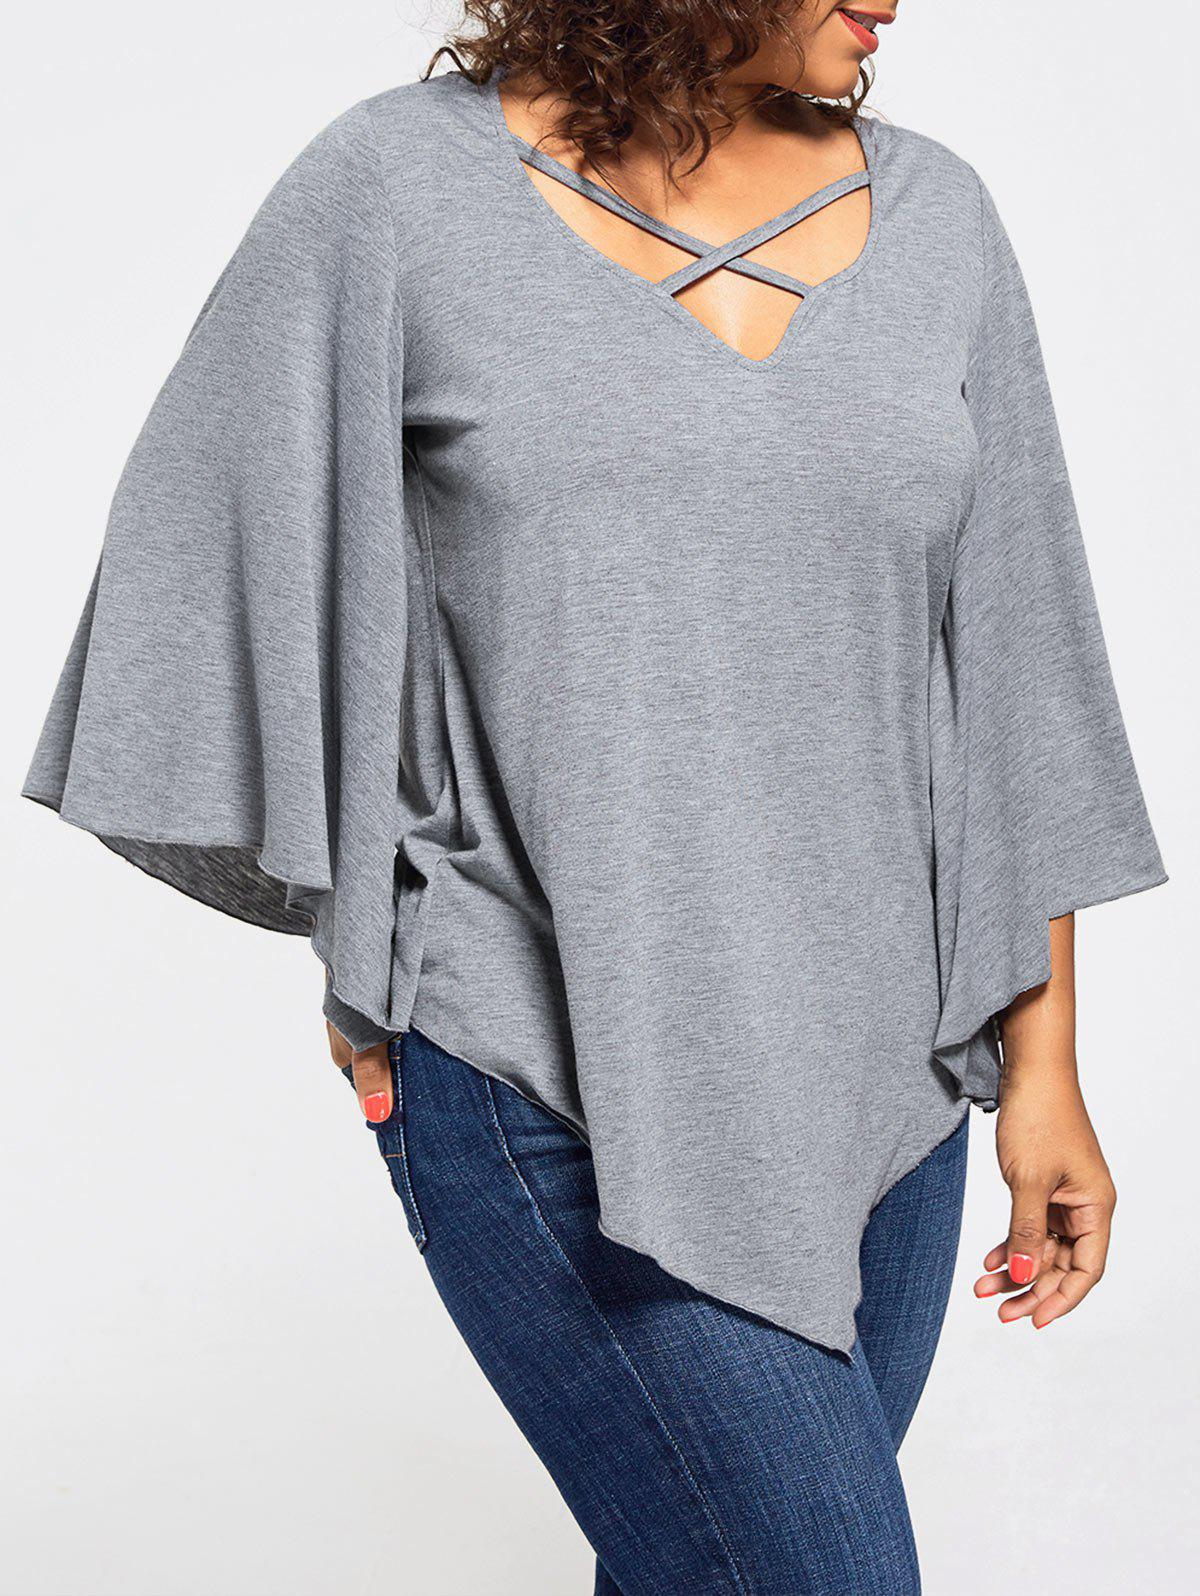 Lace Insert Plus Size Batwing Sleeve Blouse lace insert plus size blouse